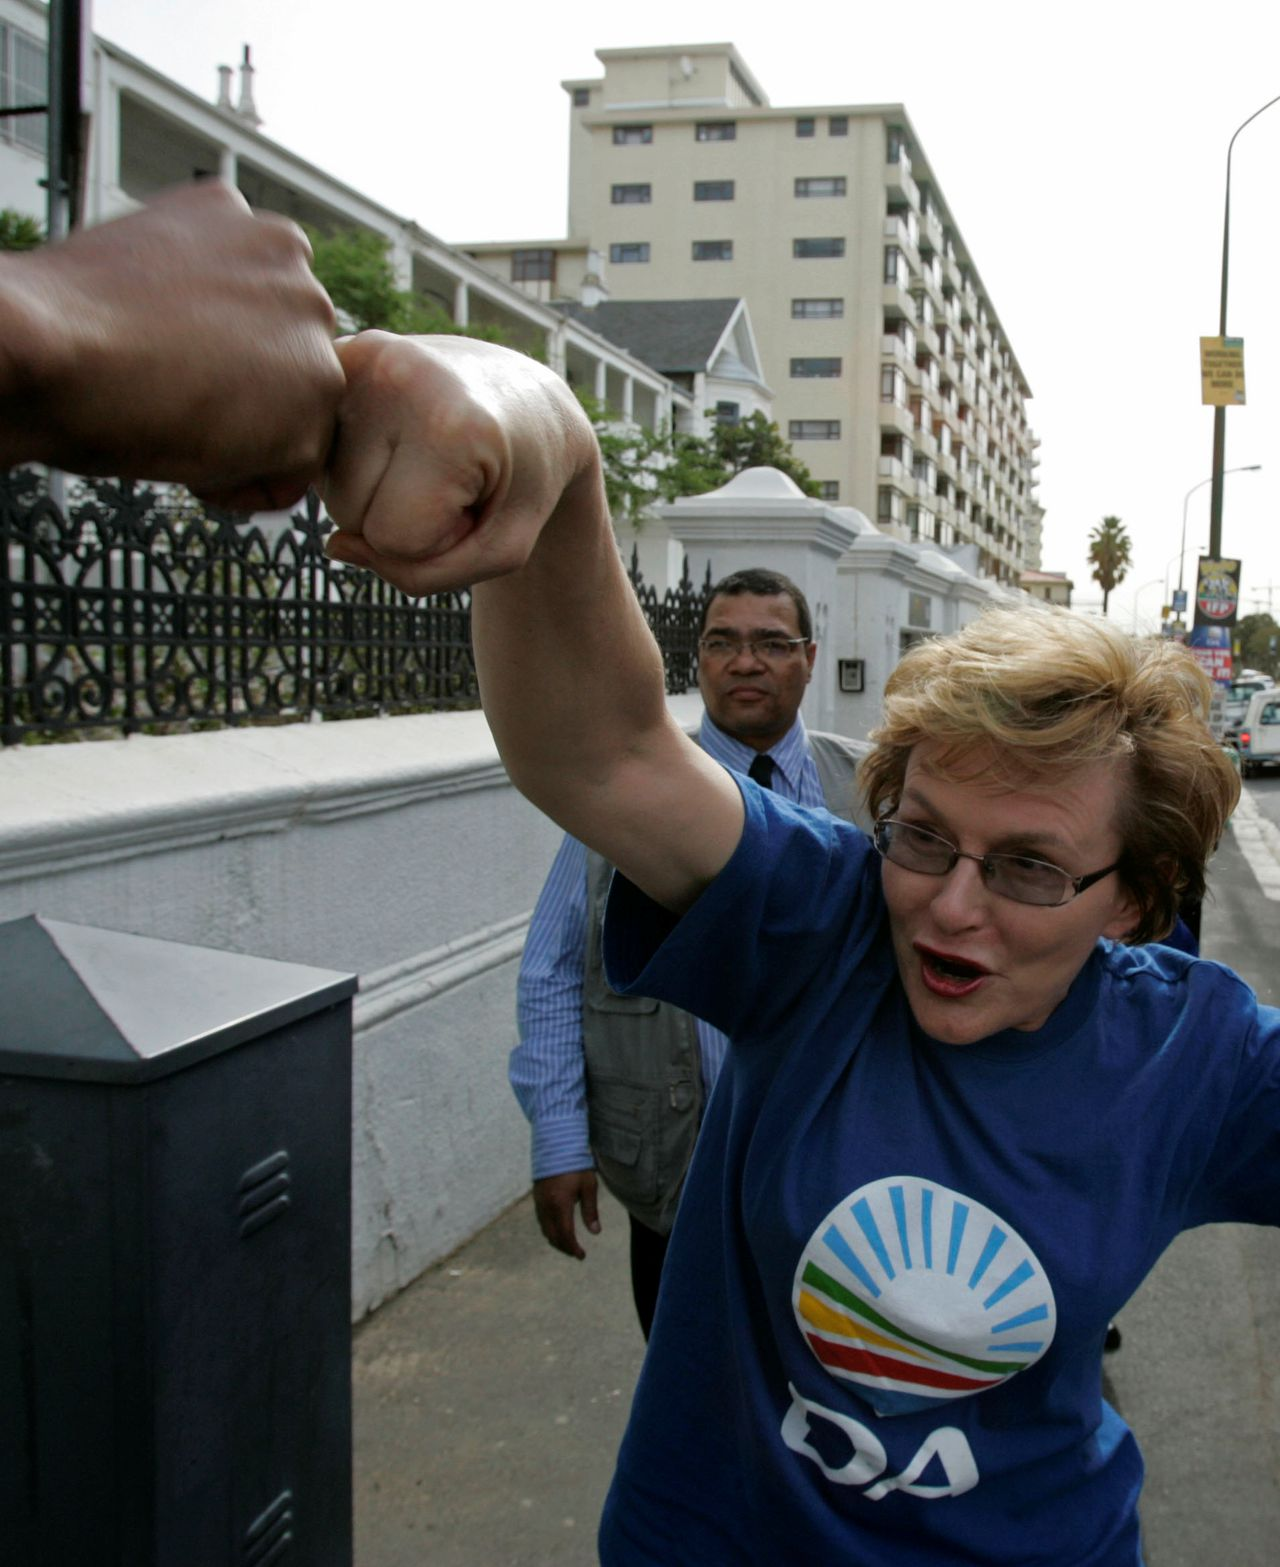 Helen Zille op verkiezingscampagne in Cape Town waar zij een aanhanger begroette. (Foto AP) Democratic Alliance, DA, leader Helen Zille, greets a man while campaigning in Cape Town, South Africa, Tuesday, April 21, 2009. For all the talk of crime, jobs or AIDS, South Africa's parliamentary vote Wednesday is all about Jacob Zuma, who has survived corruption and sex scandals to emerge as one of the country's most popular leaders ever. (AP Photo/Schalk van Zuydam)